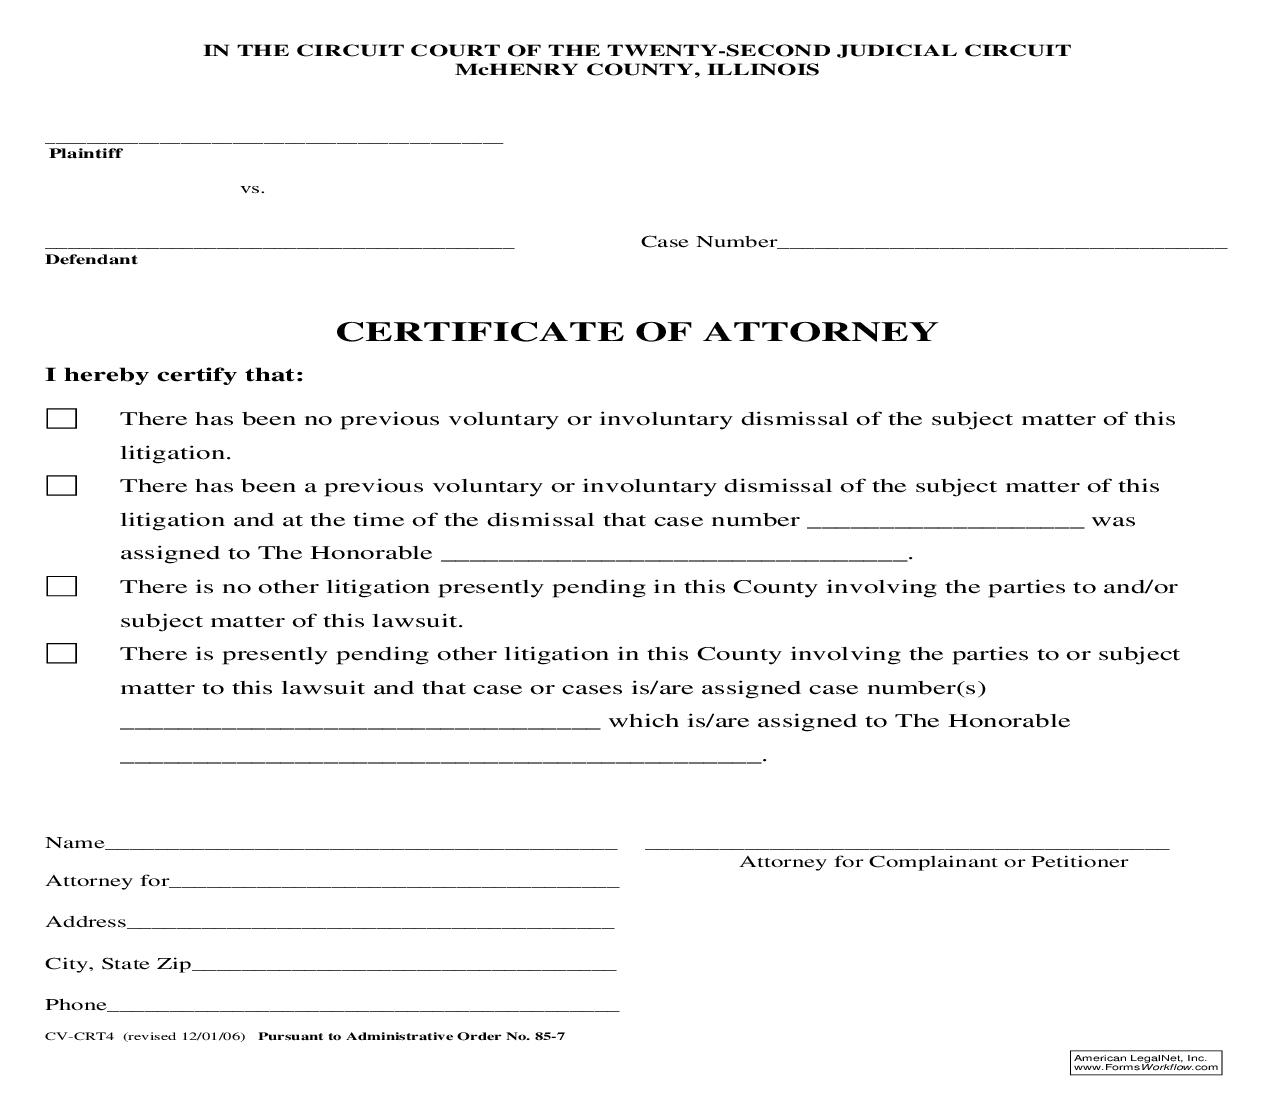 Certificate Of Attorney {CV-CRT4} | Pdf Fpdf Doc Docx | Illinois